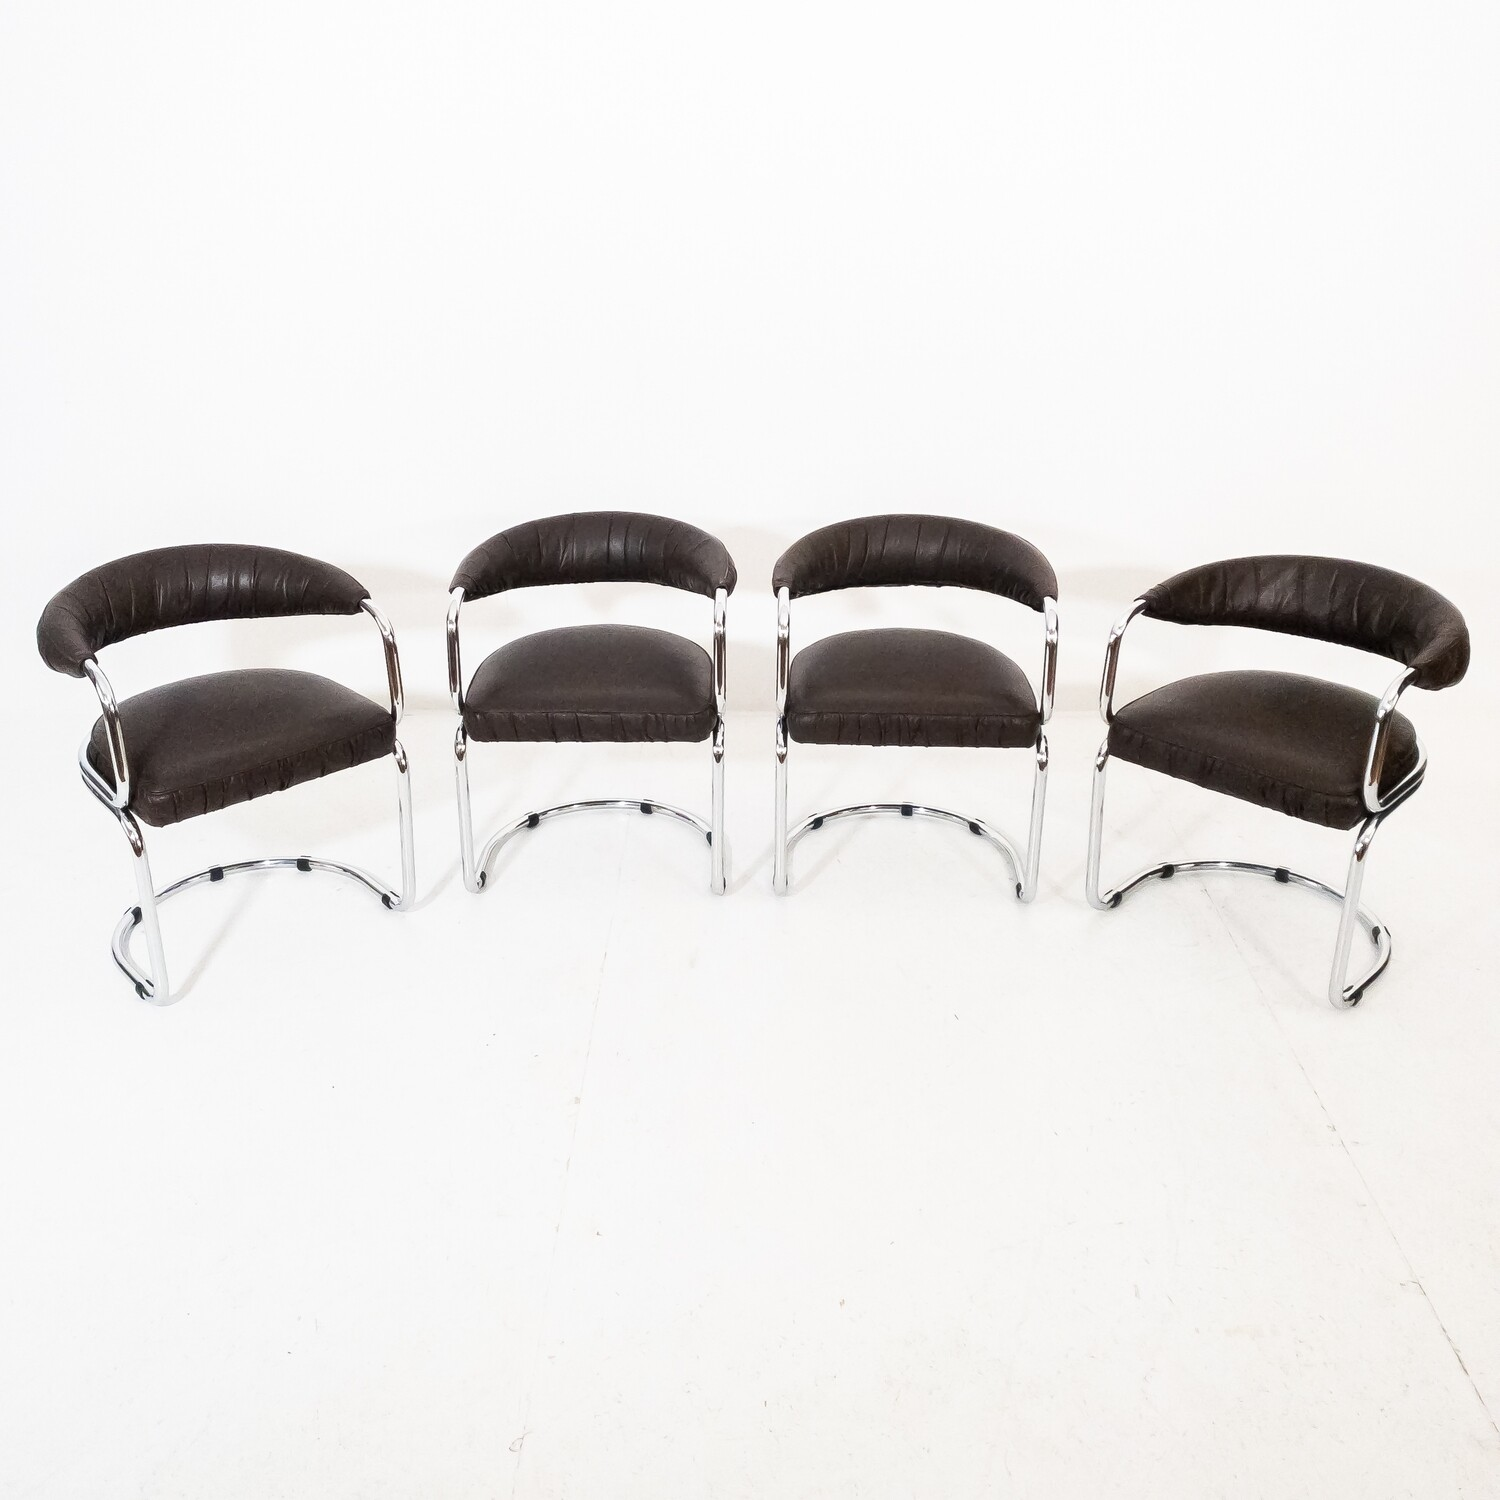 Set of 4 Giotto Stoppino style chairs